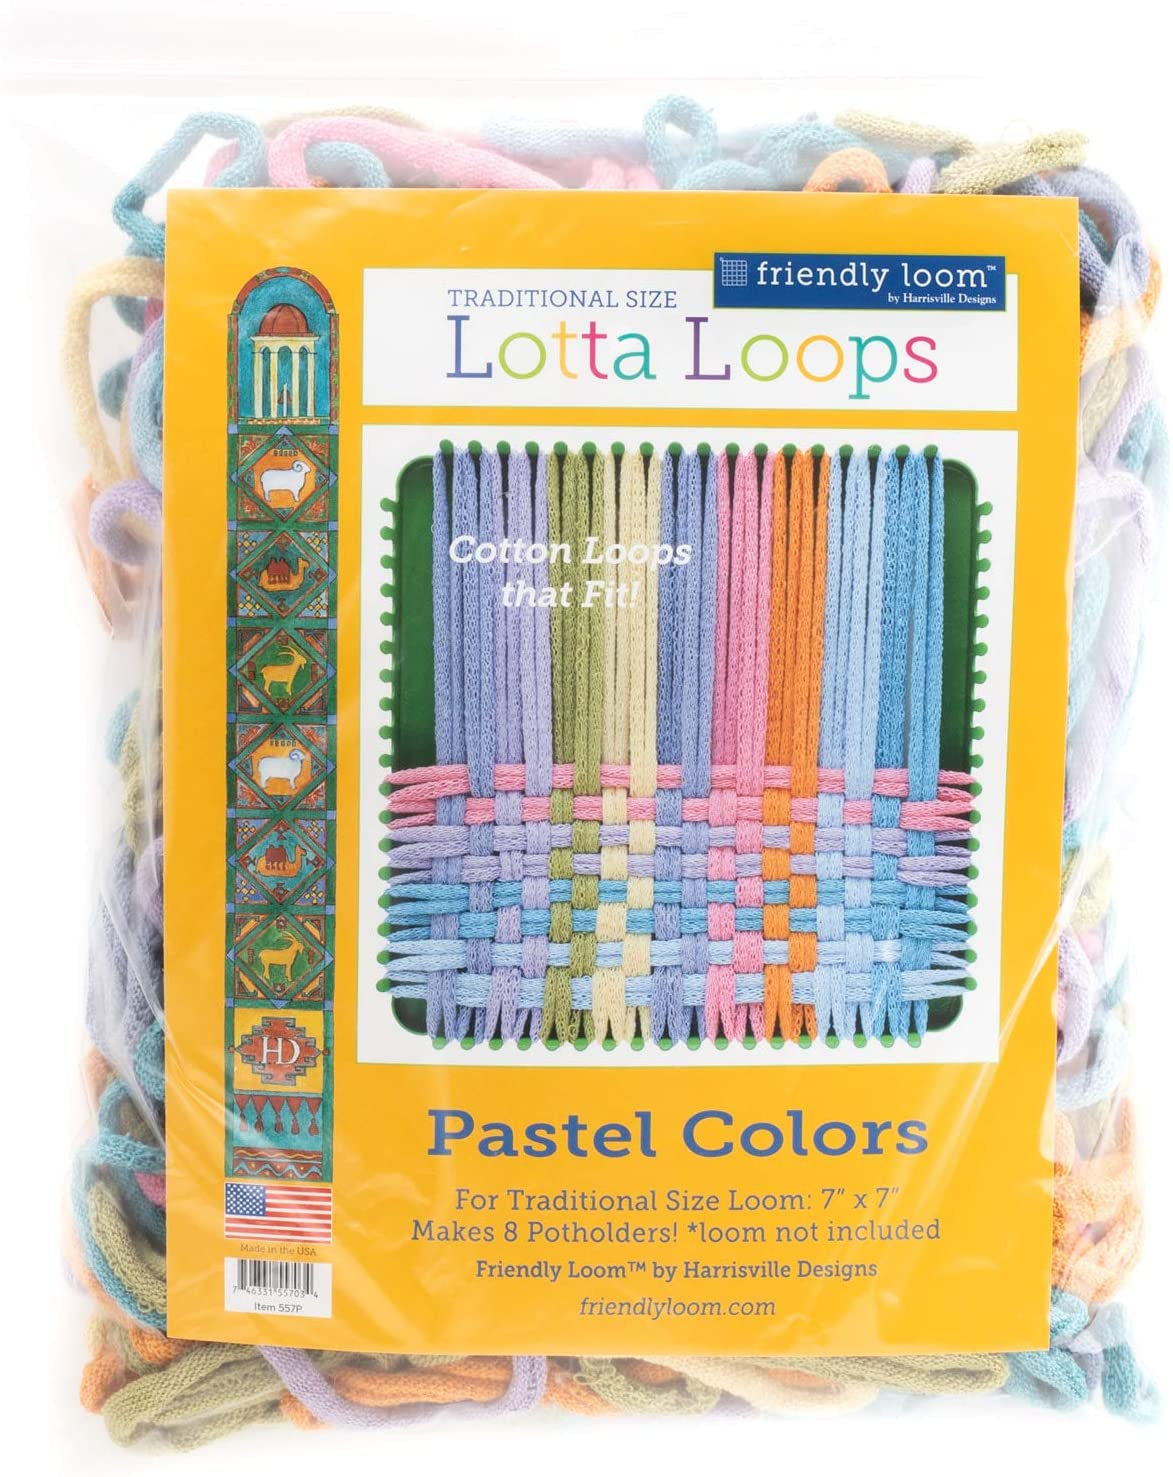 """Harrisville Designs Lotta Loops 7"""" Standard Size Pastel Cotton Loops Makes 8 Potholders, Weaving, Crafts For Kids and Adults-Assorted Colors"""